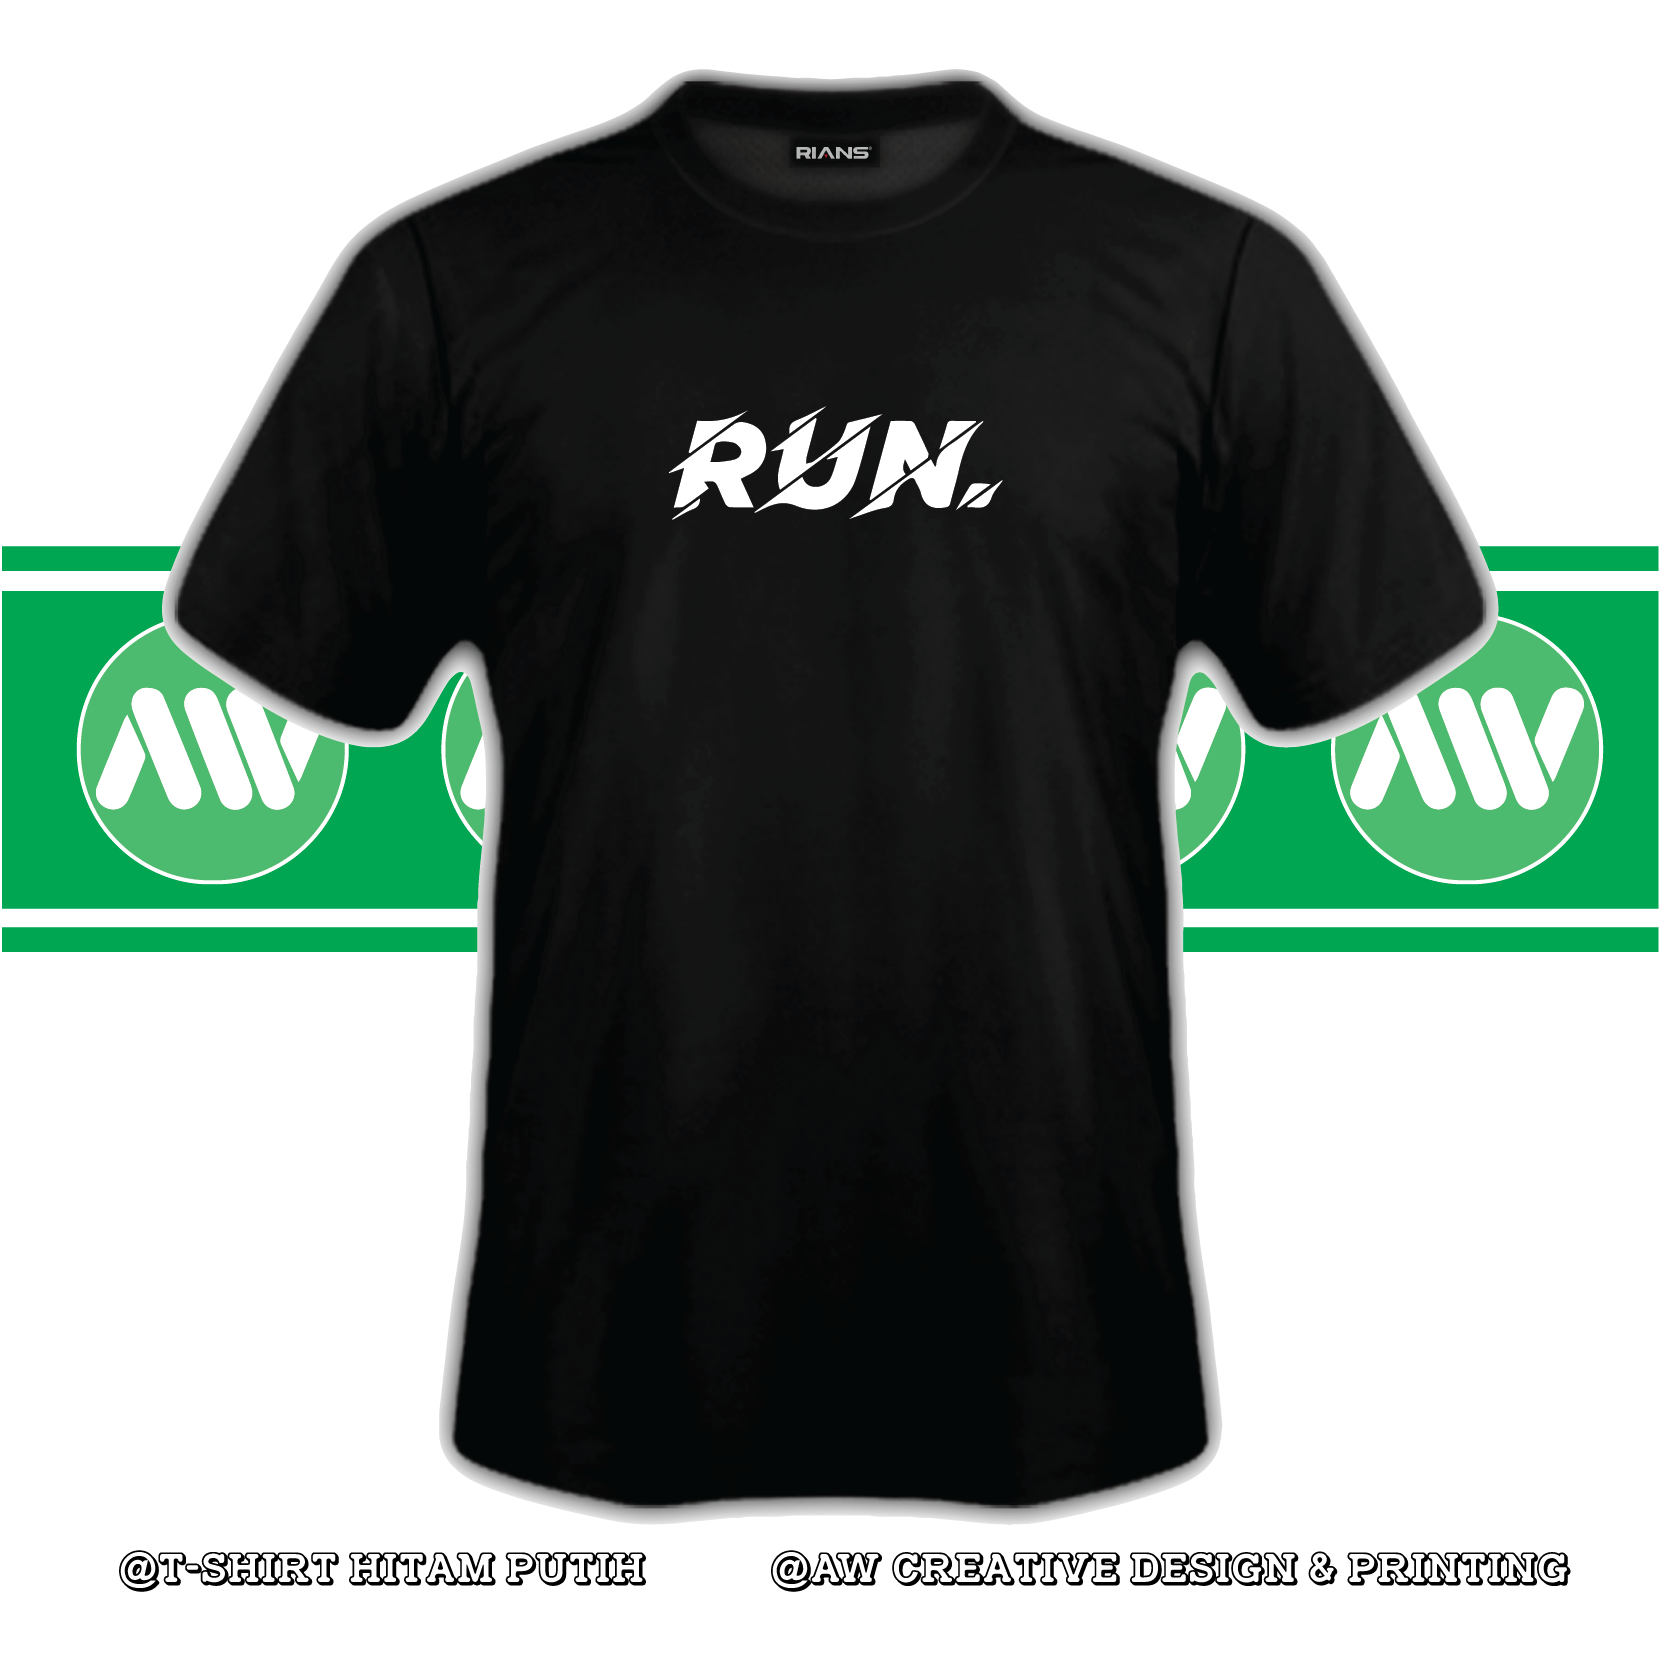 T-Shirt Run 100% Cotton Baju Tshirt Black White Hitam Putih Bossku